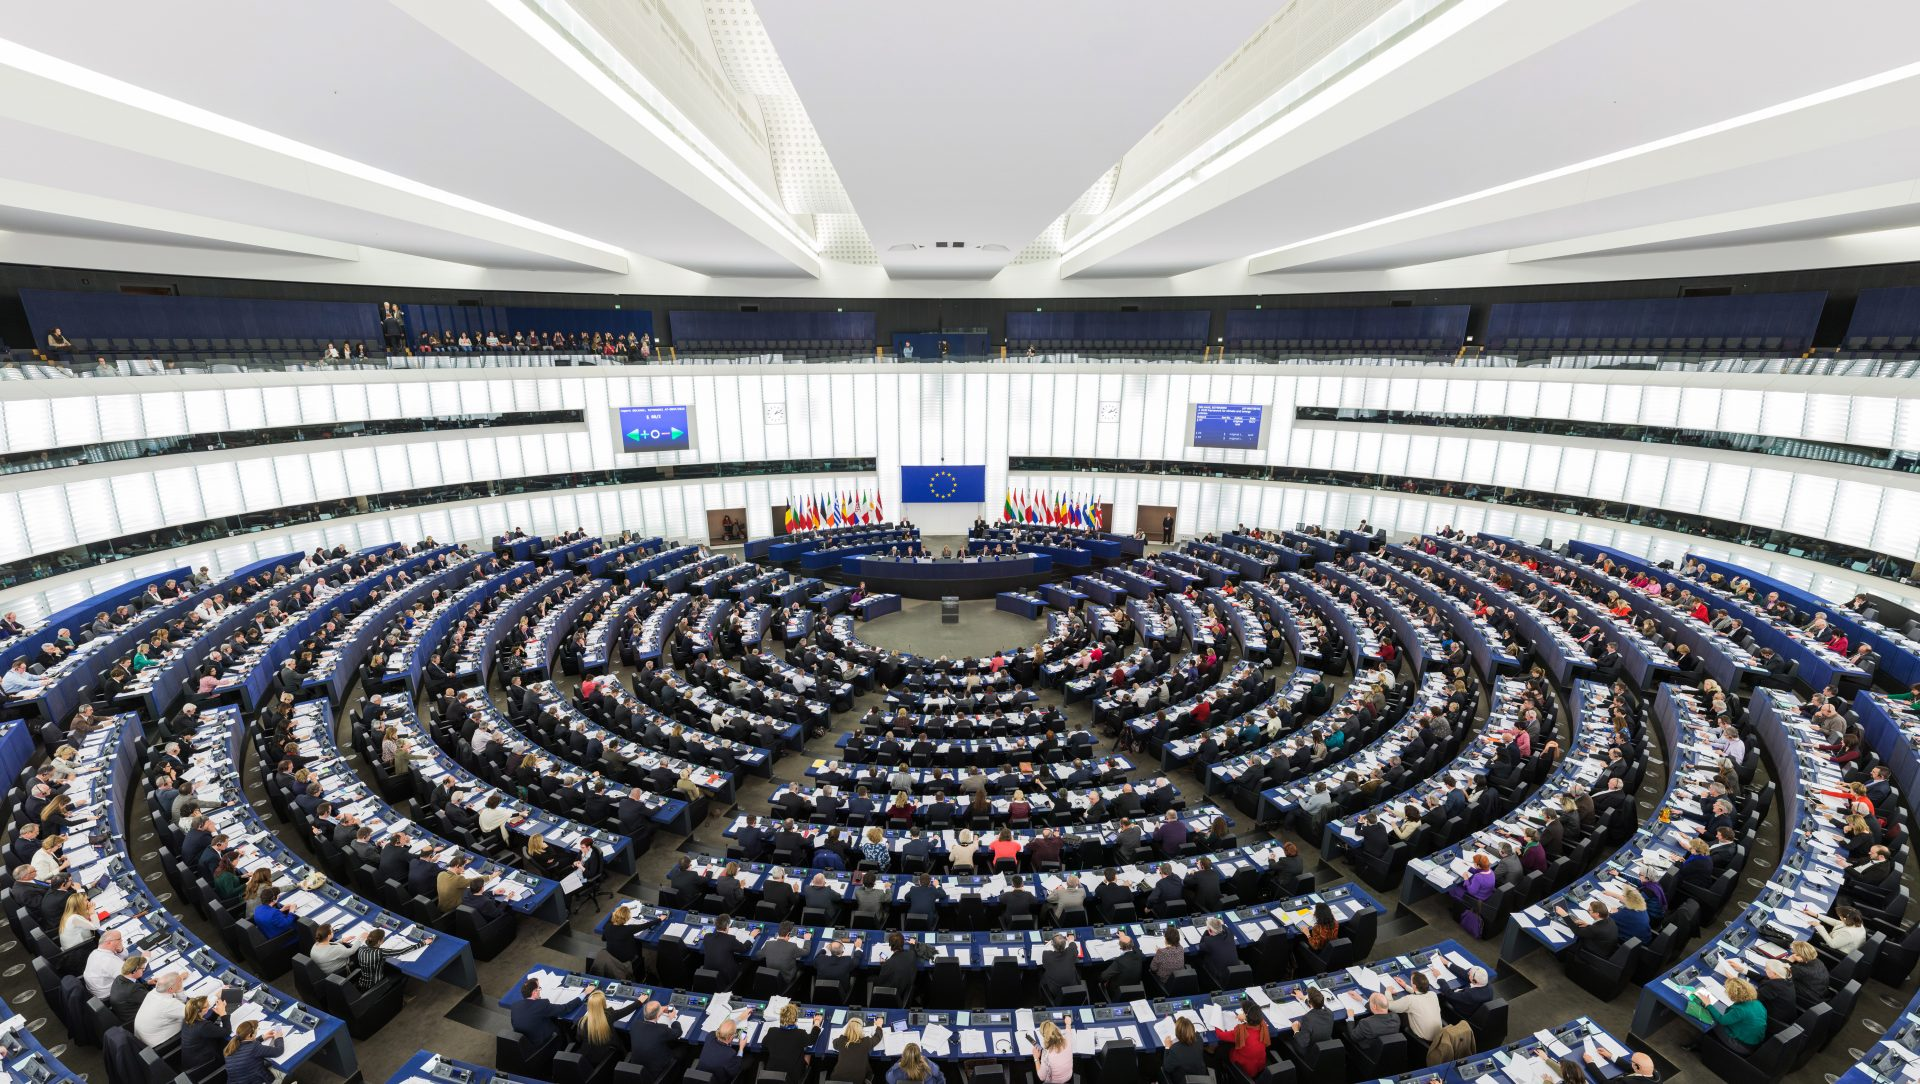 European_Parliament_Strasbourg_Hemicycle_-_Diliff-1-e1546524191701